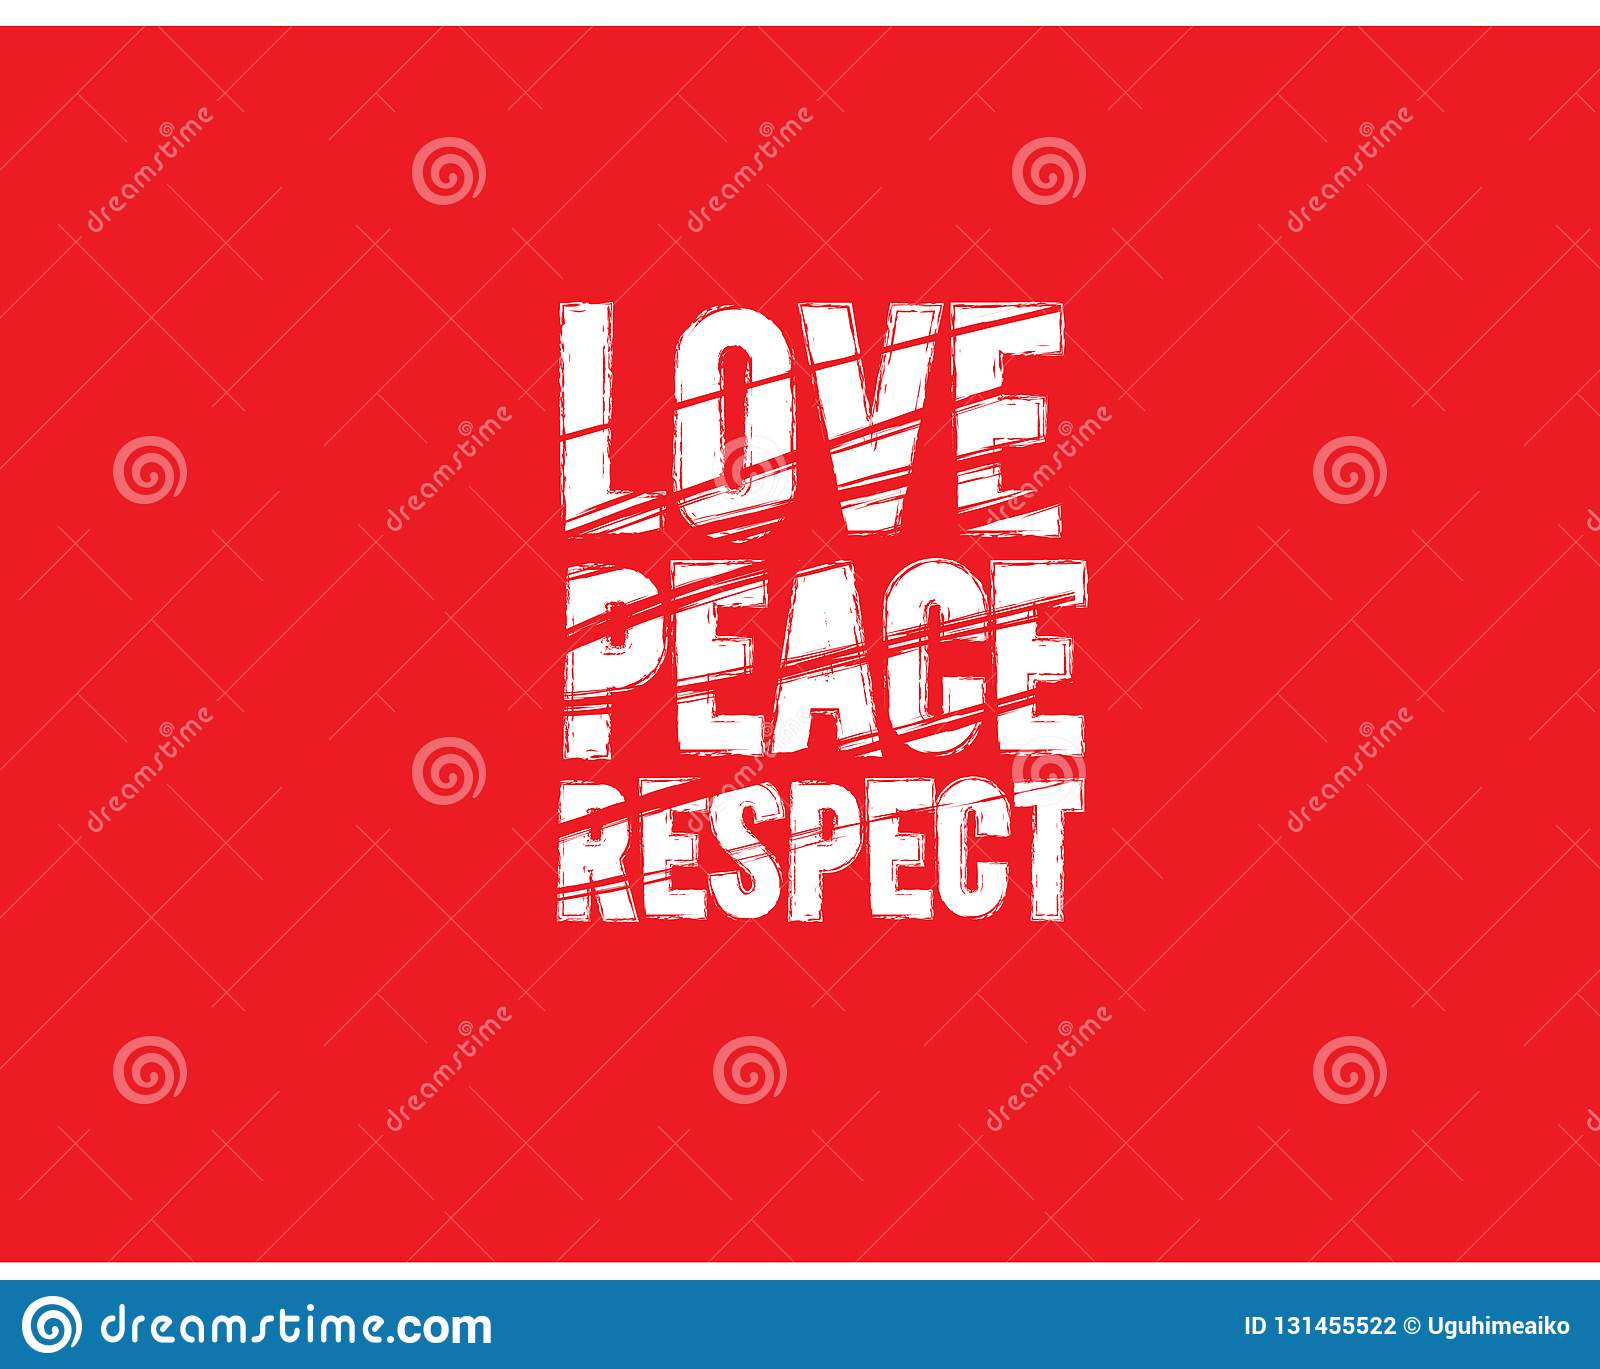 Respect Quotes Stock Illustrations 89 Respect Quotes Stock Illustrations Vectors Clipart Dreamstime